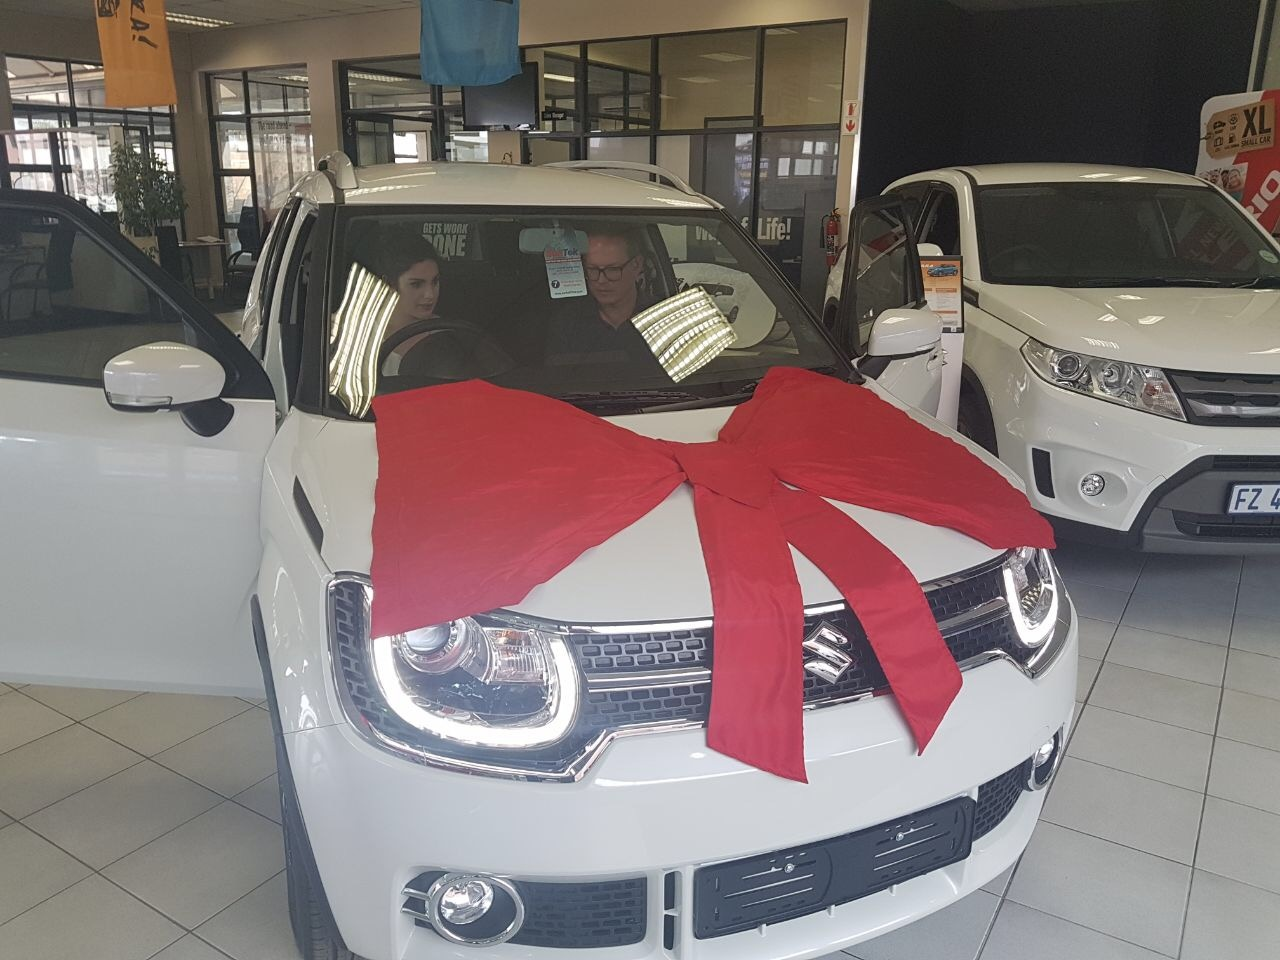 Suzuki Ignis at the dealership